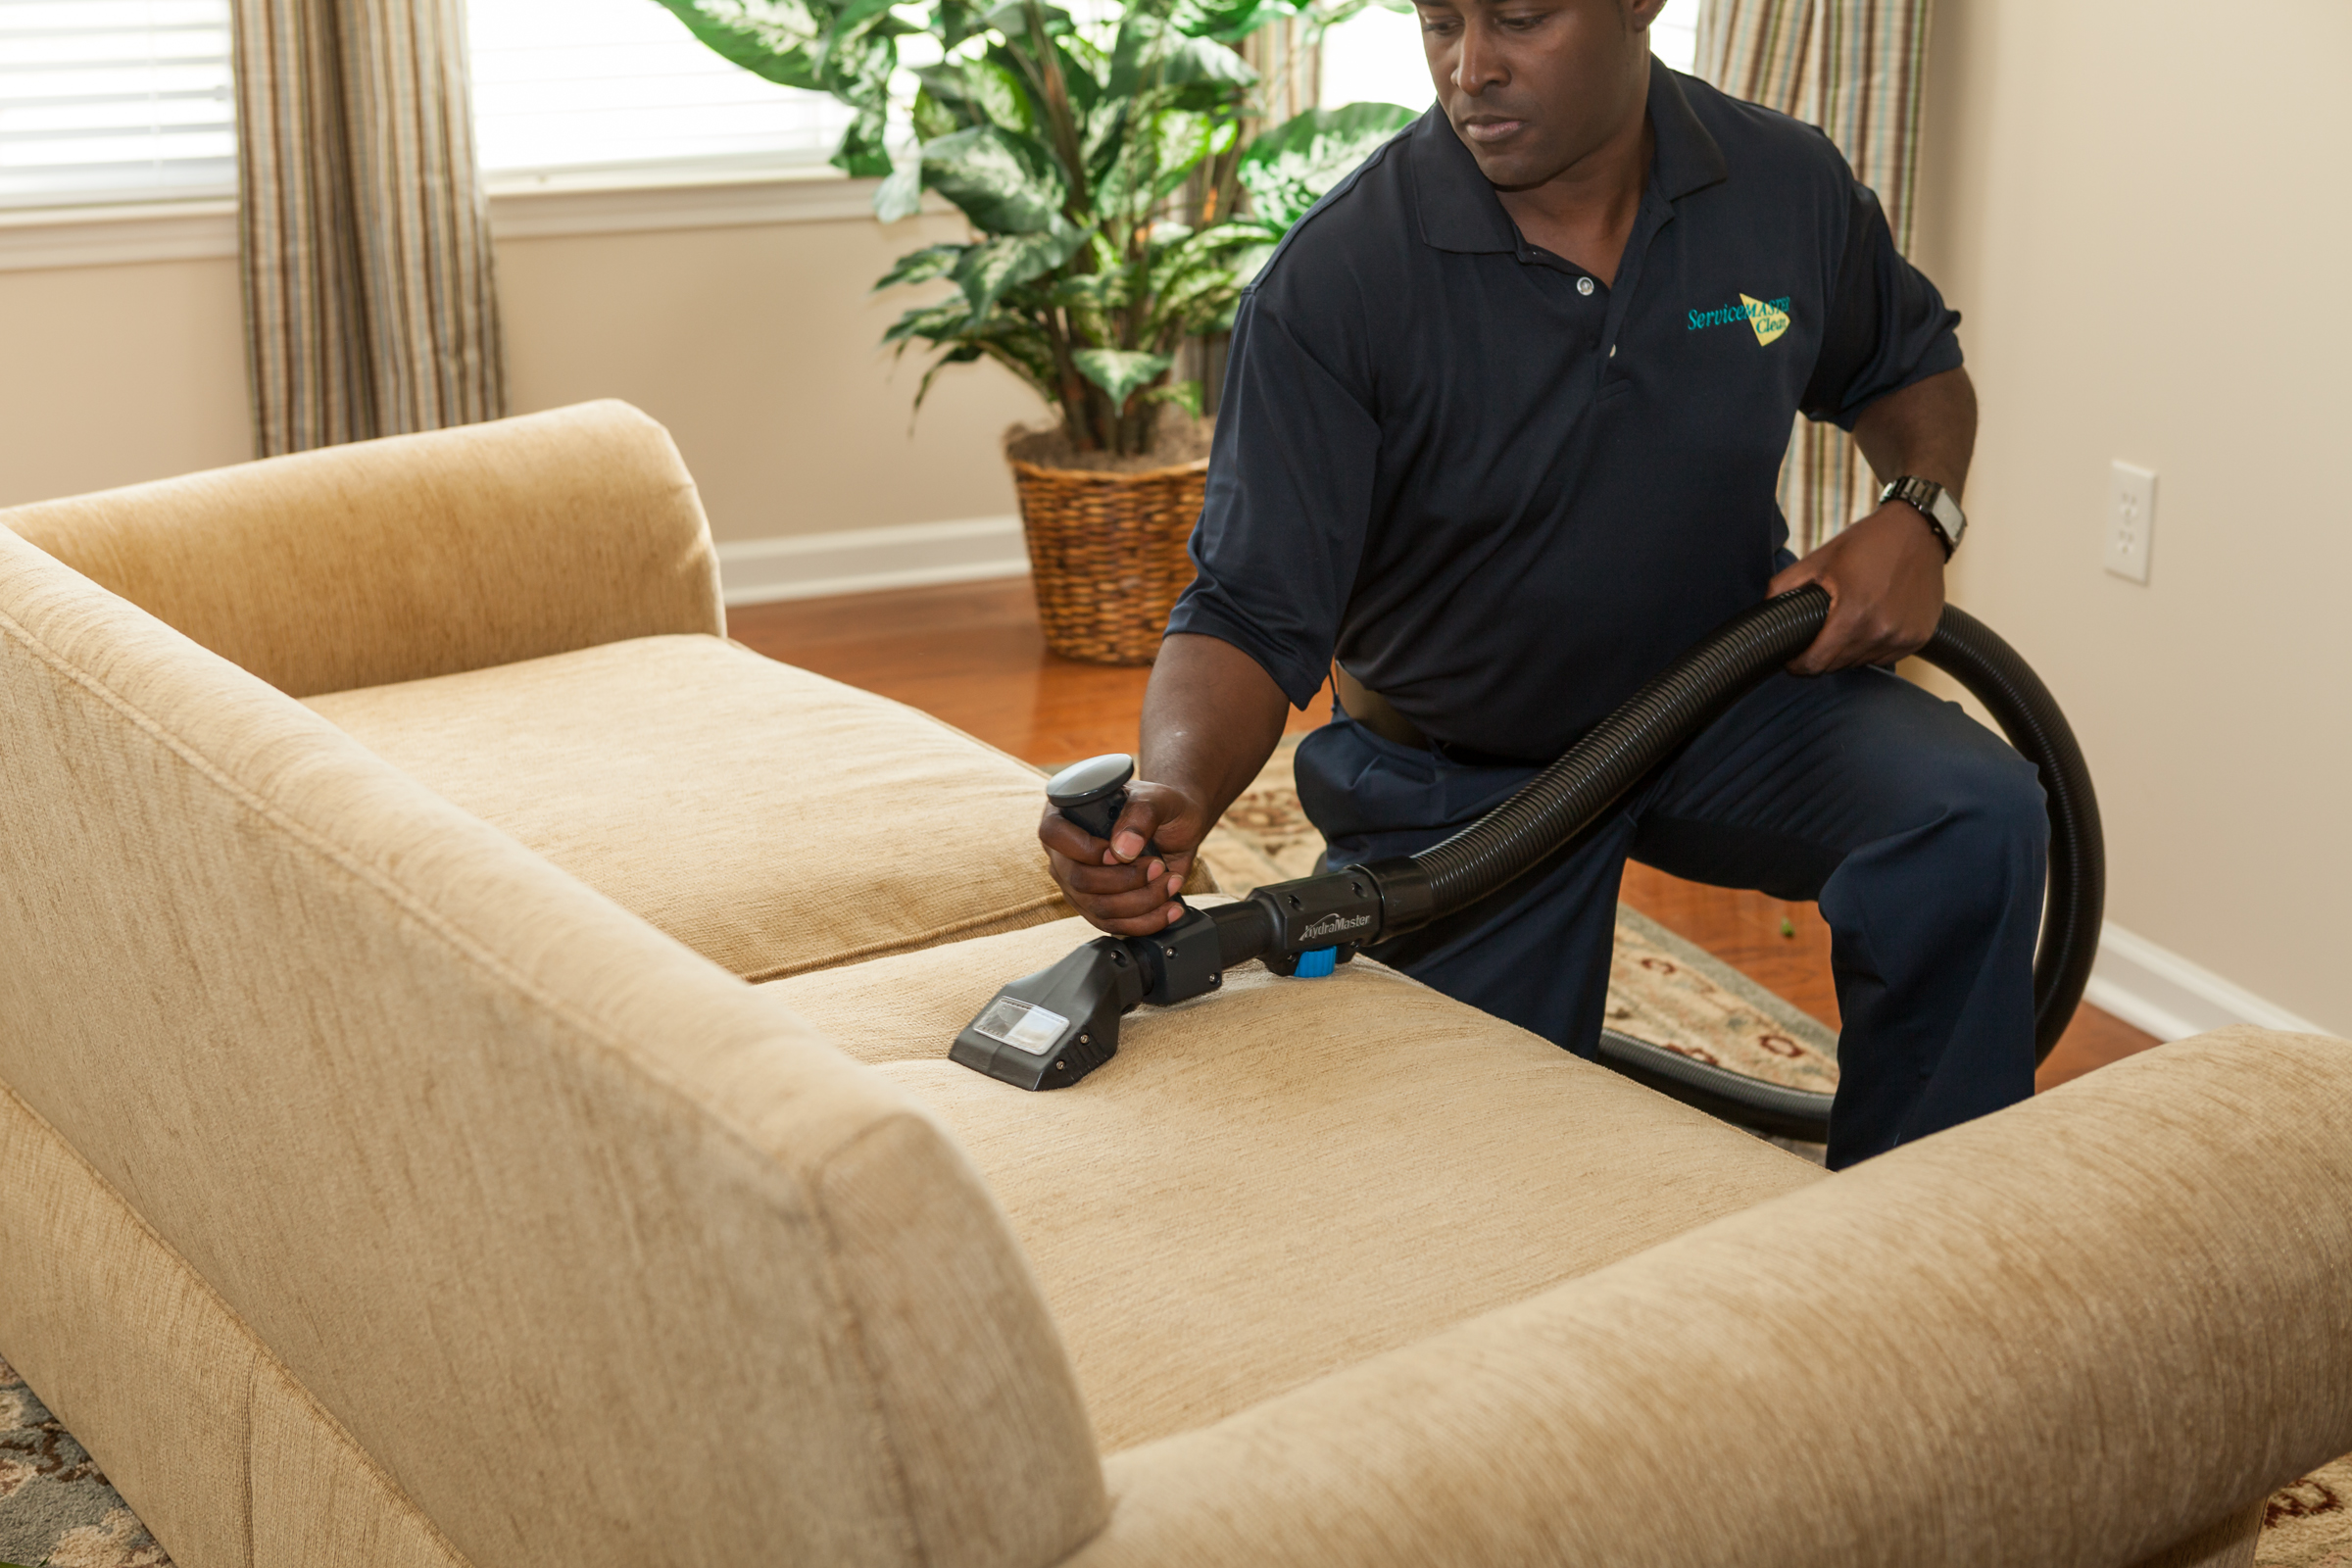 Upholstery Cleaning Carpet Cleaning Millbrae Carpet Rug - Sofa upholstery cleaning